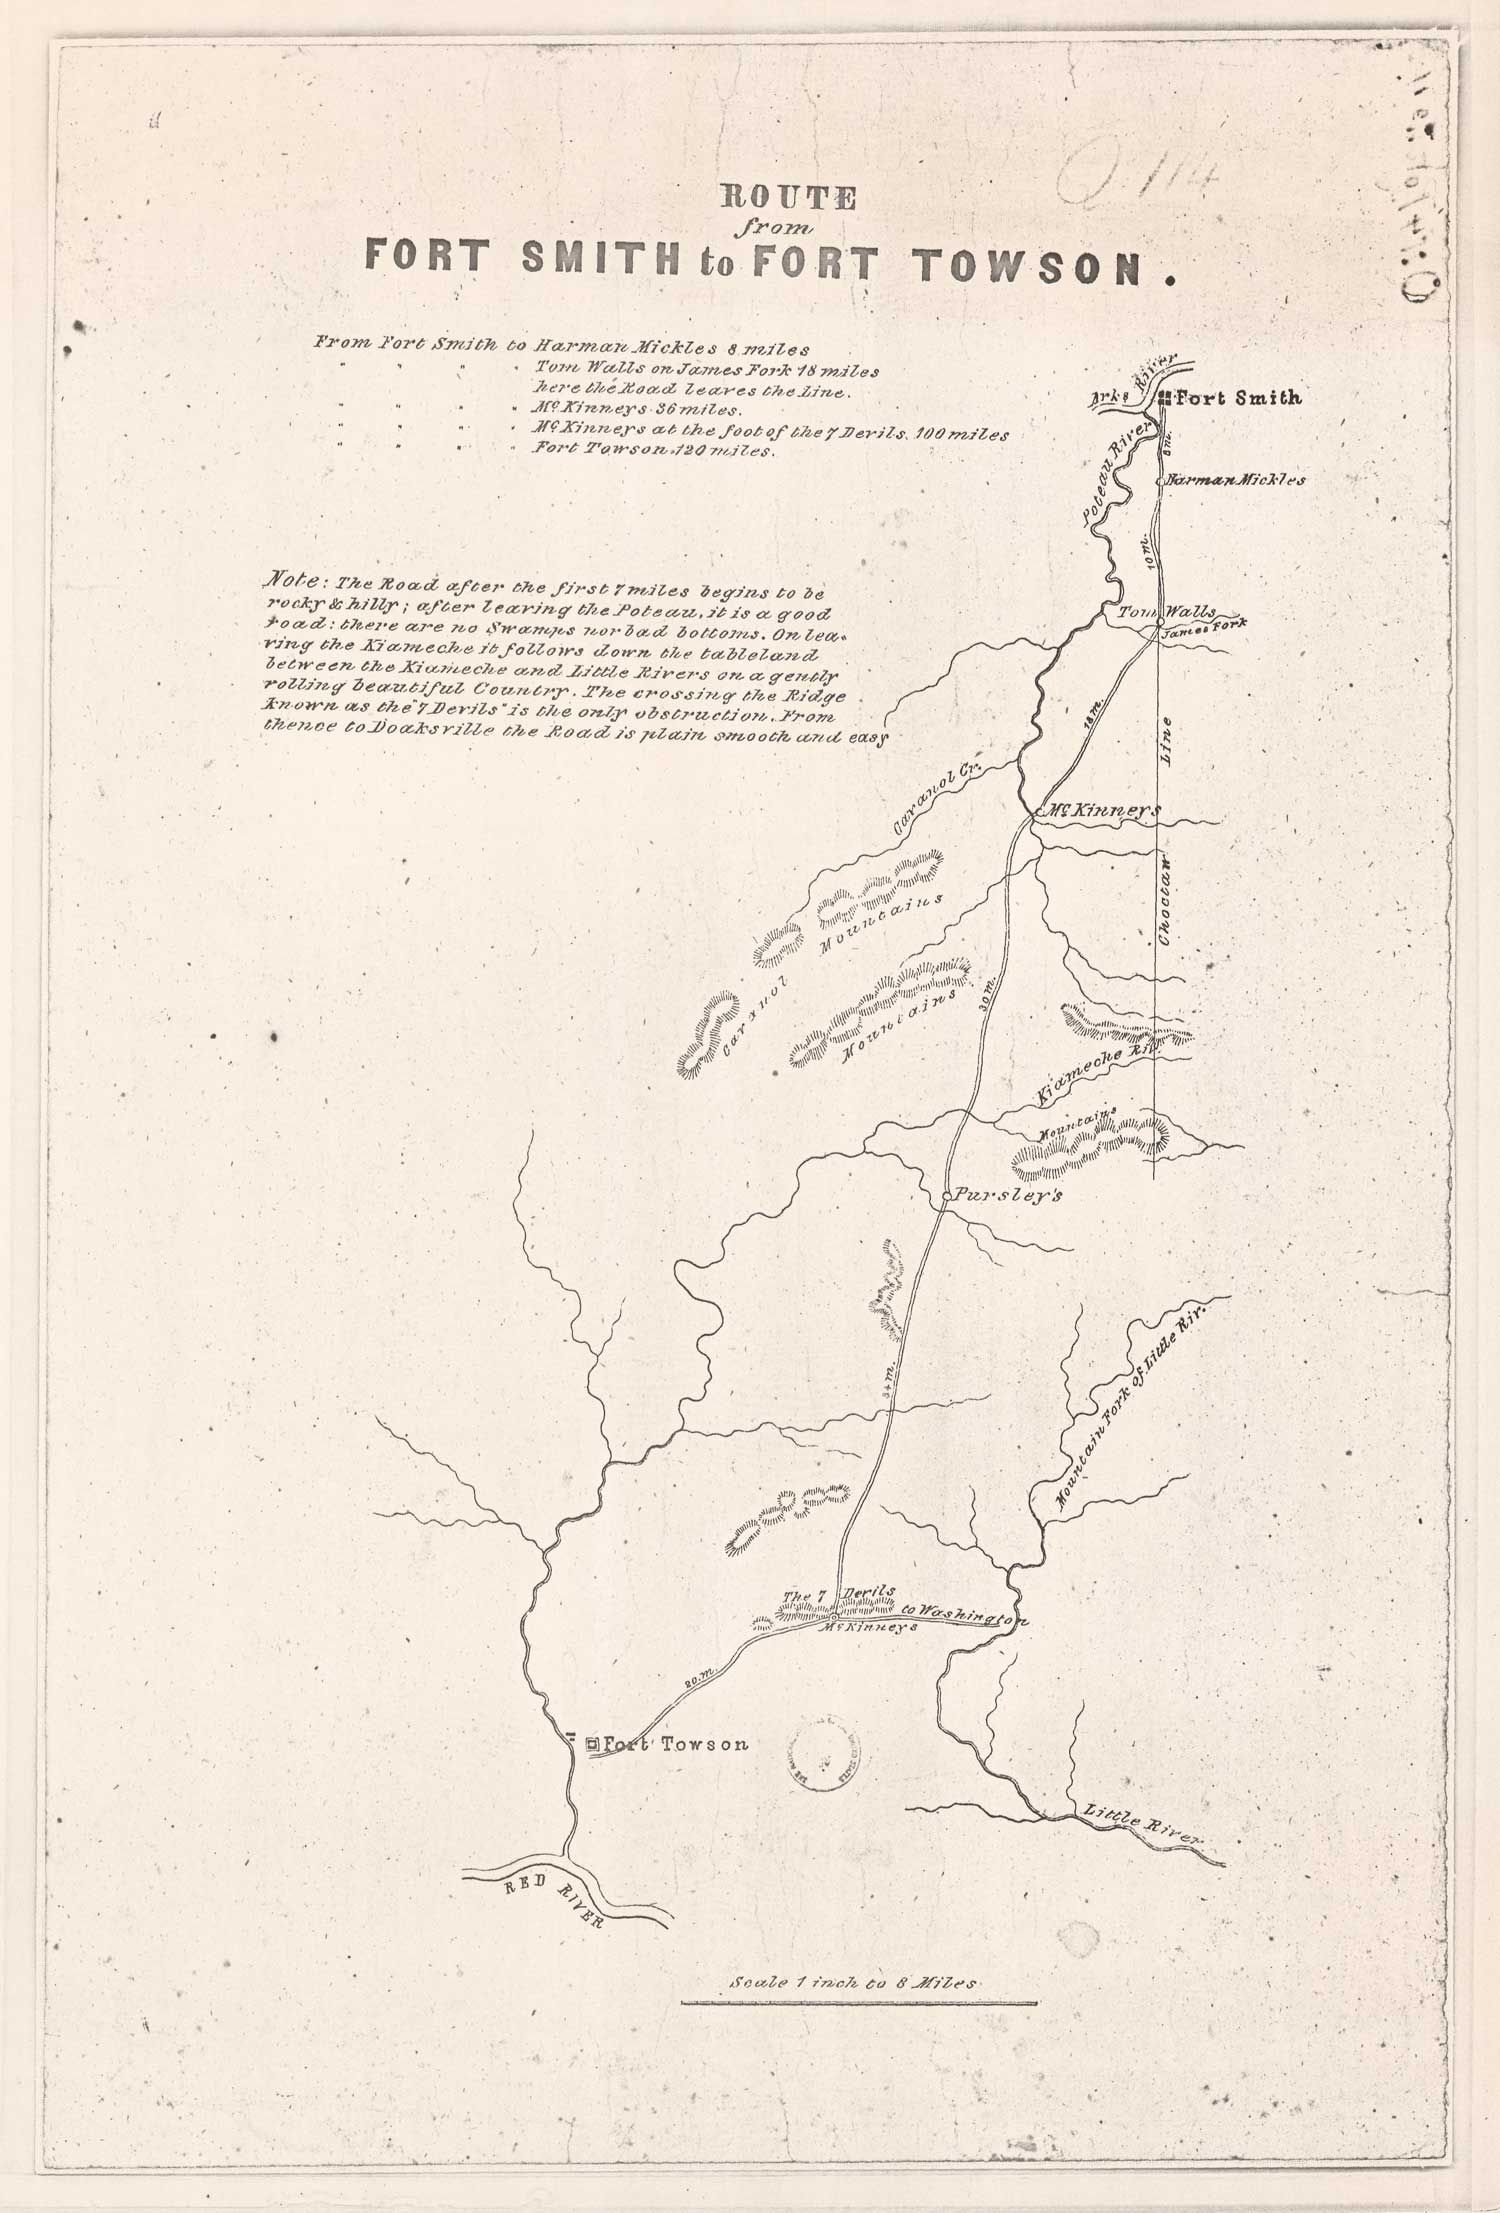 Oklahoma Civil War Sesquicentennial Route From Ft Smith To Ft